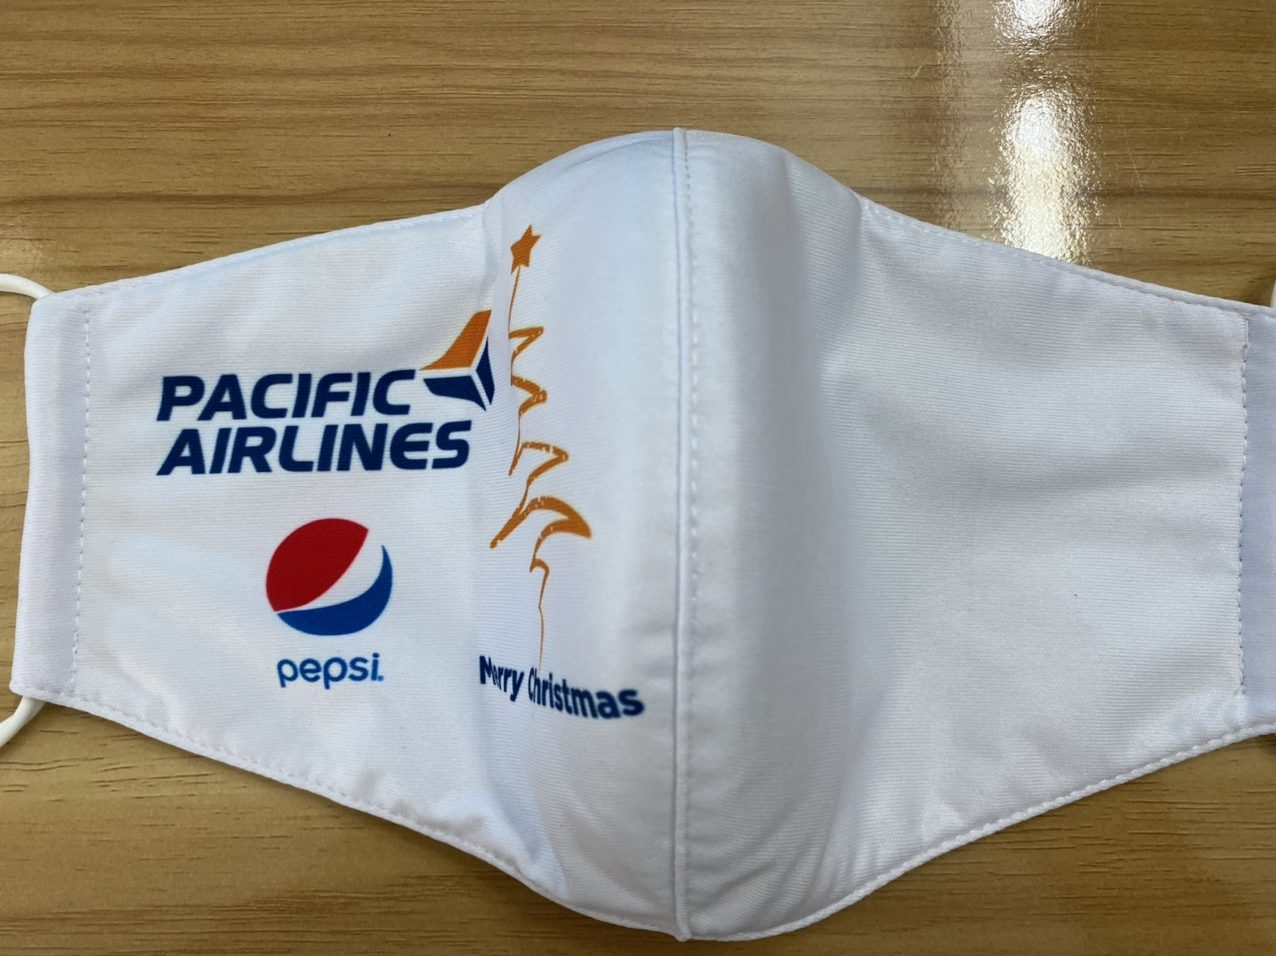 Khẩu Trang In Logo PACIFIC AIRLINES 2 Lớp  - Mẫu Khẩu Trang In 3D Logo PACIFIC AIRLINES Nền Trắng 7